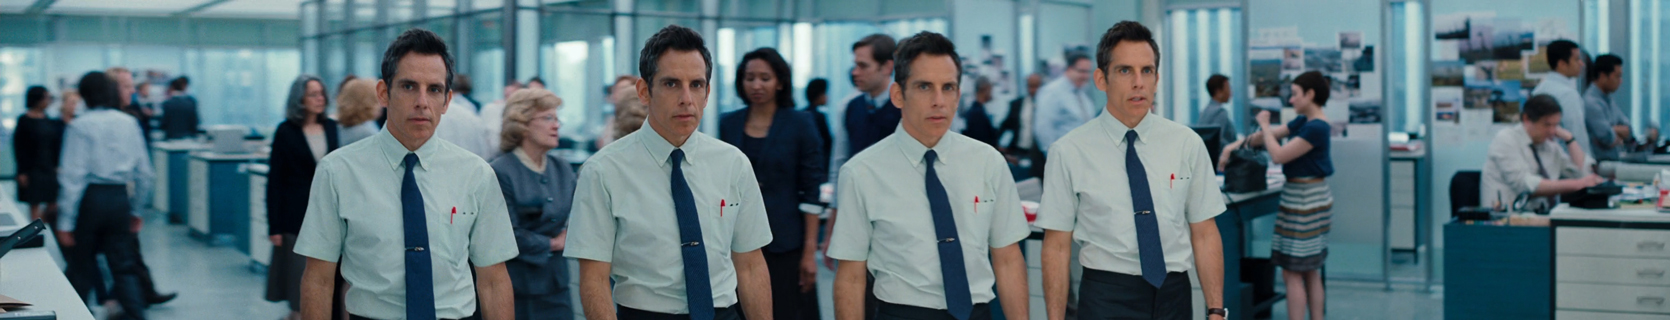 the-secret-life-of-walter-mitty_ben-stiller_25-floor-meeting_film-panoramas